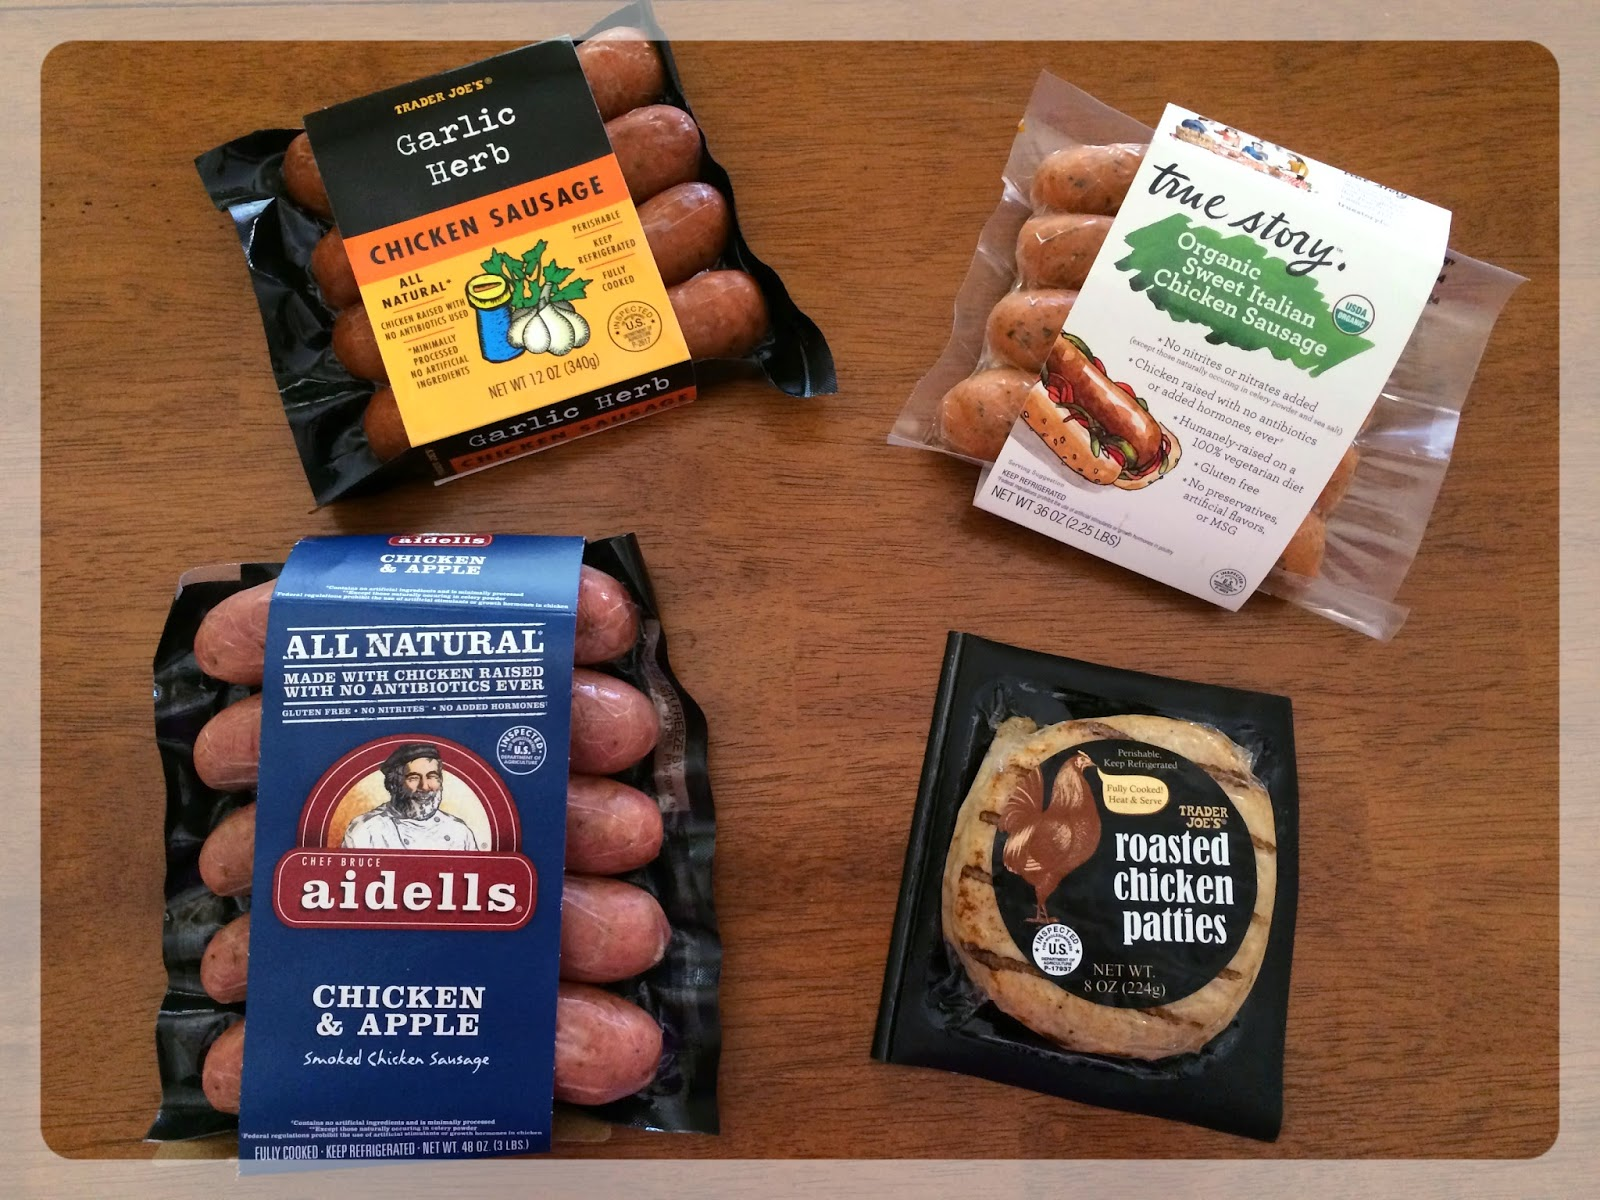 Trader Joe's Garlic Herb Chicken Sausage: Great savory flavors perfect for breakfast on its own or scrambled with eggs, or grilled & served over salad for ...